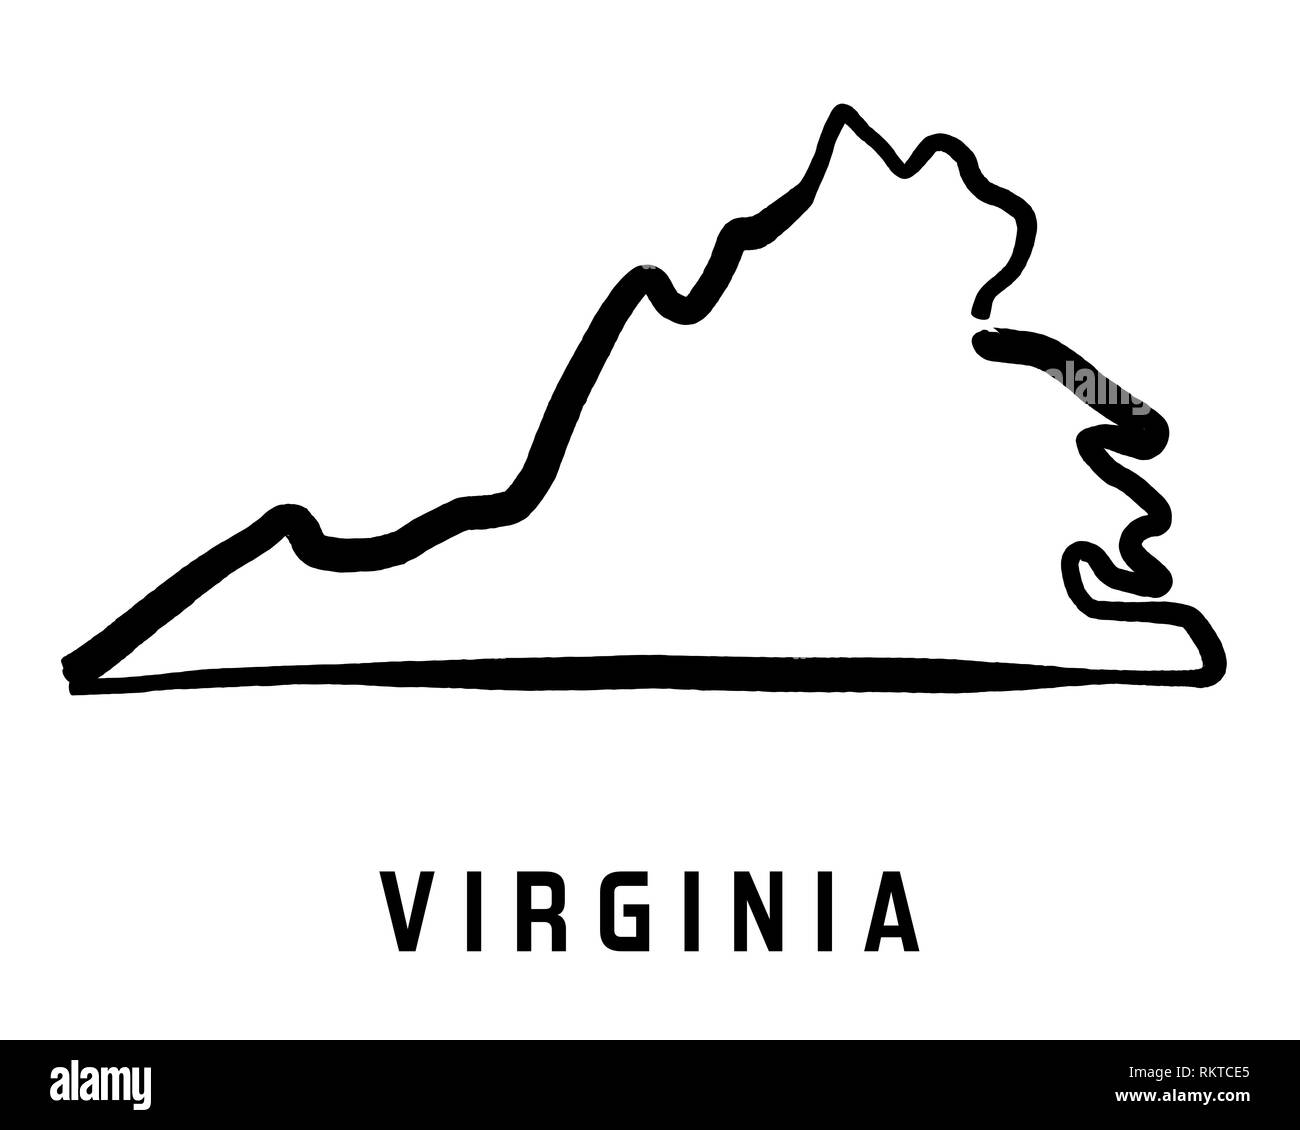 Virginia Simple Logo State Map Outline Smooth Simplified Us State - Us-map-logo